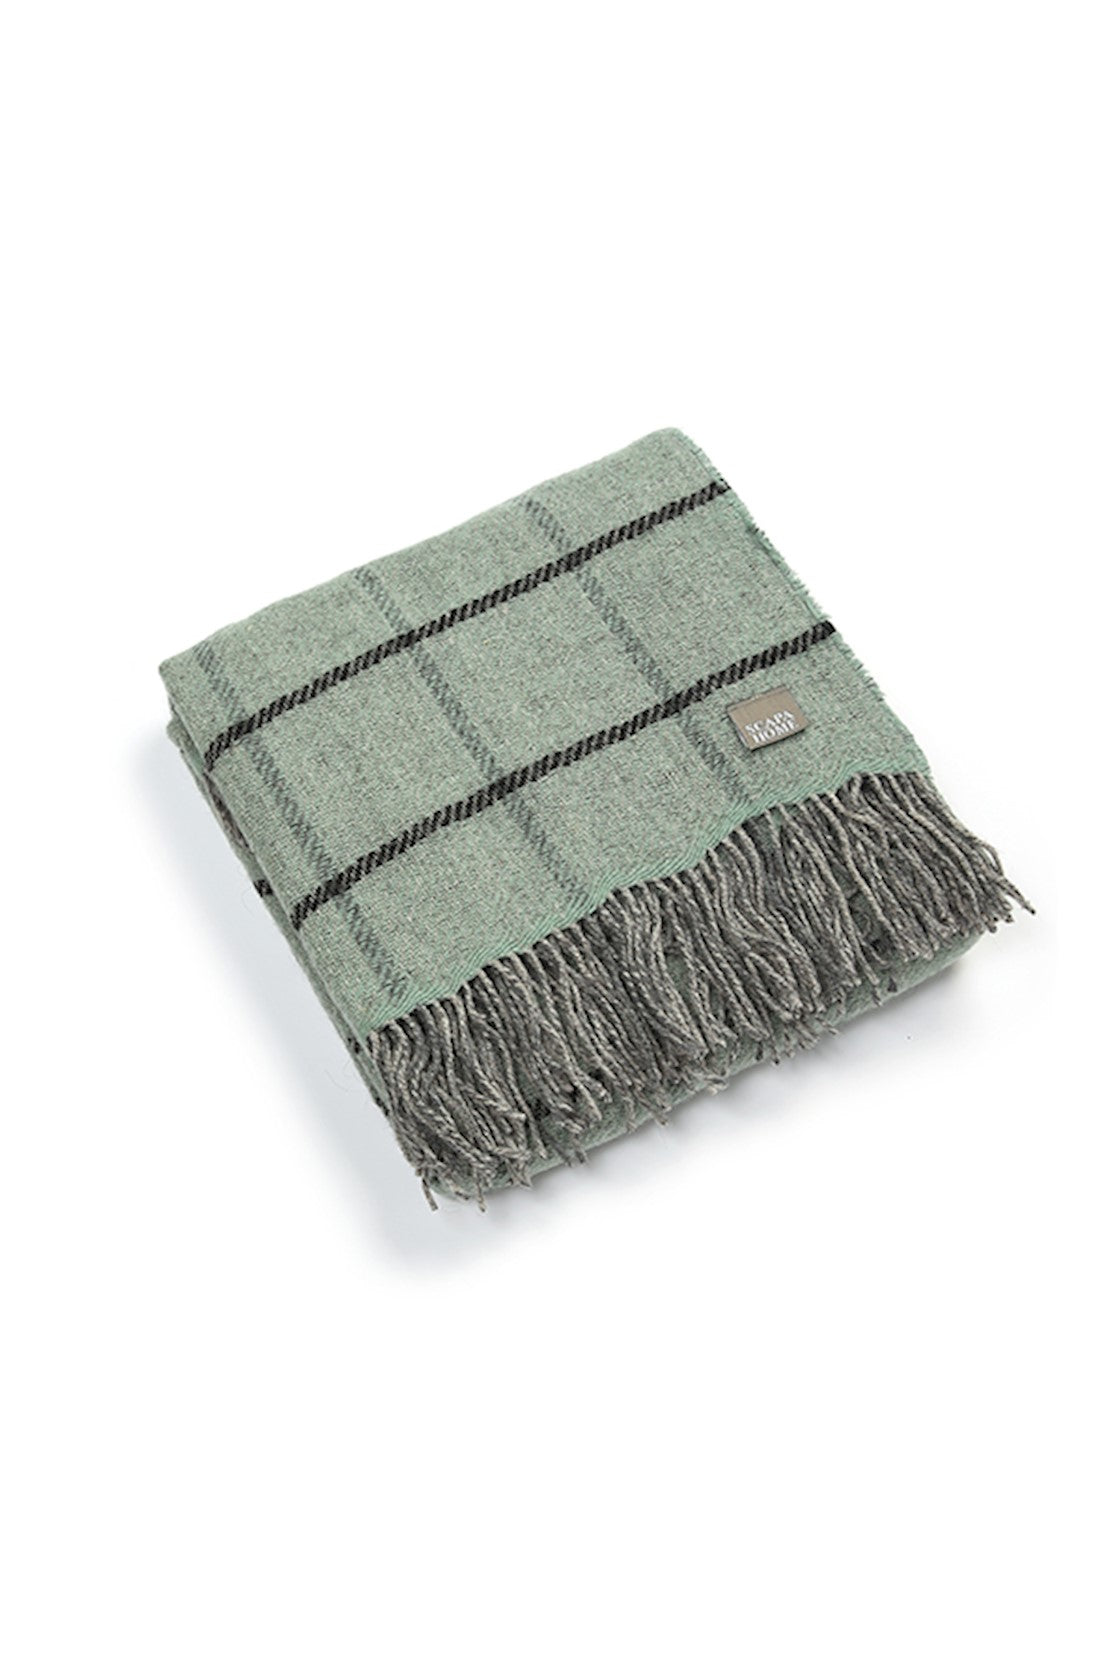 PLAID 'GREEN' - SCAPA HOME OFFICIAL